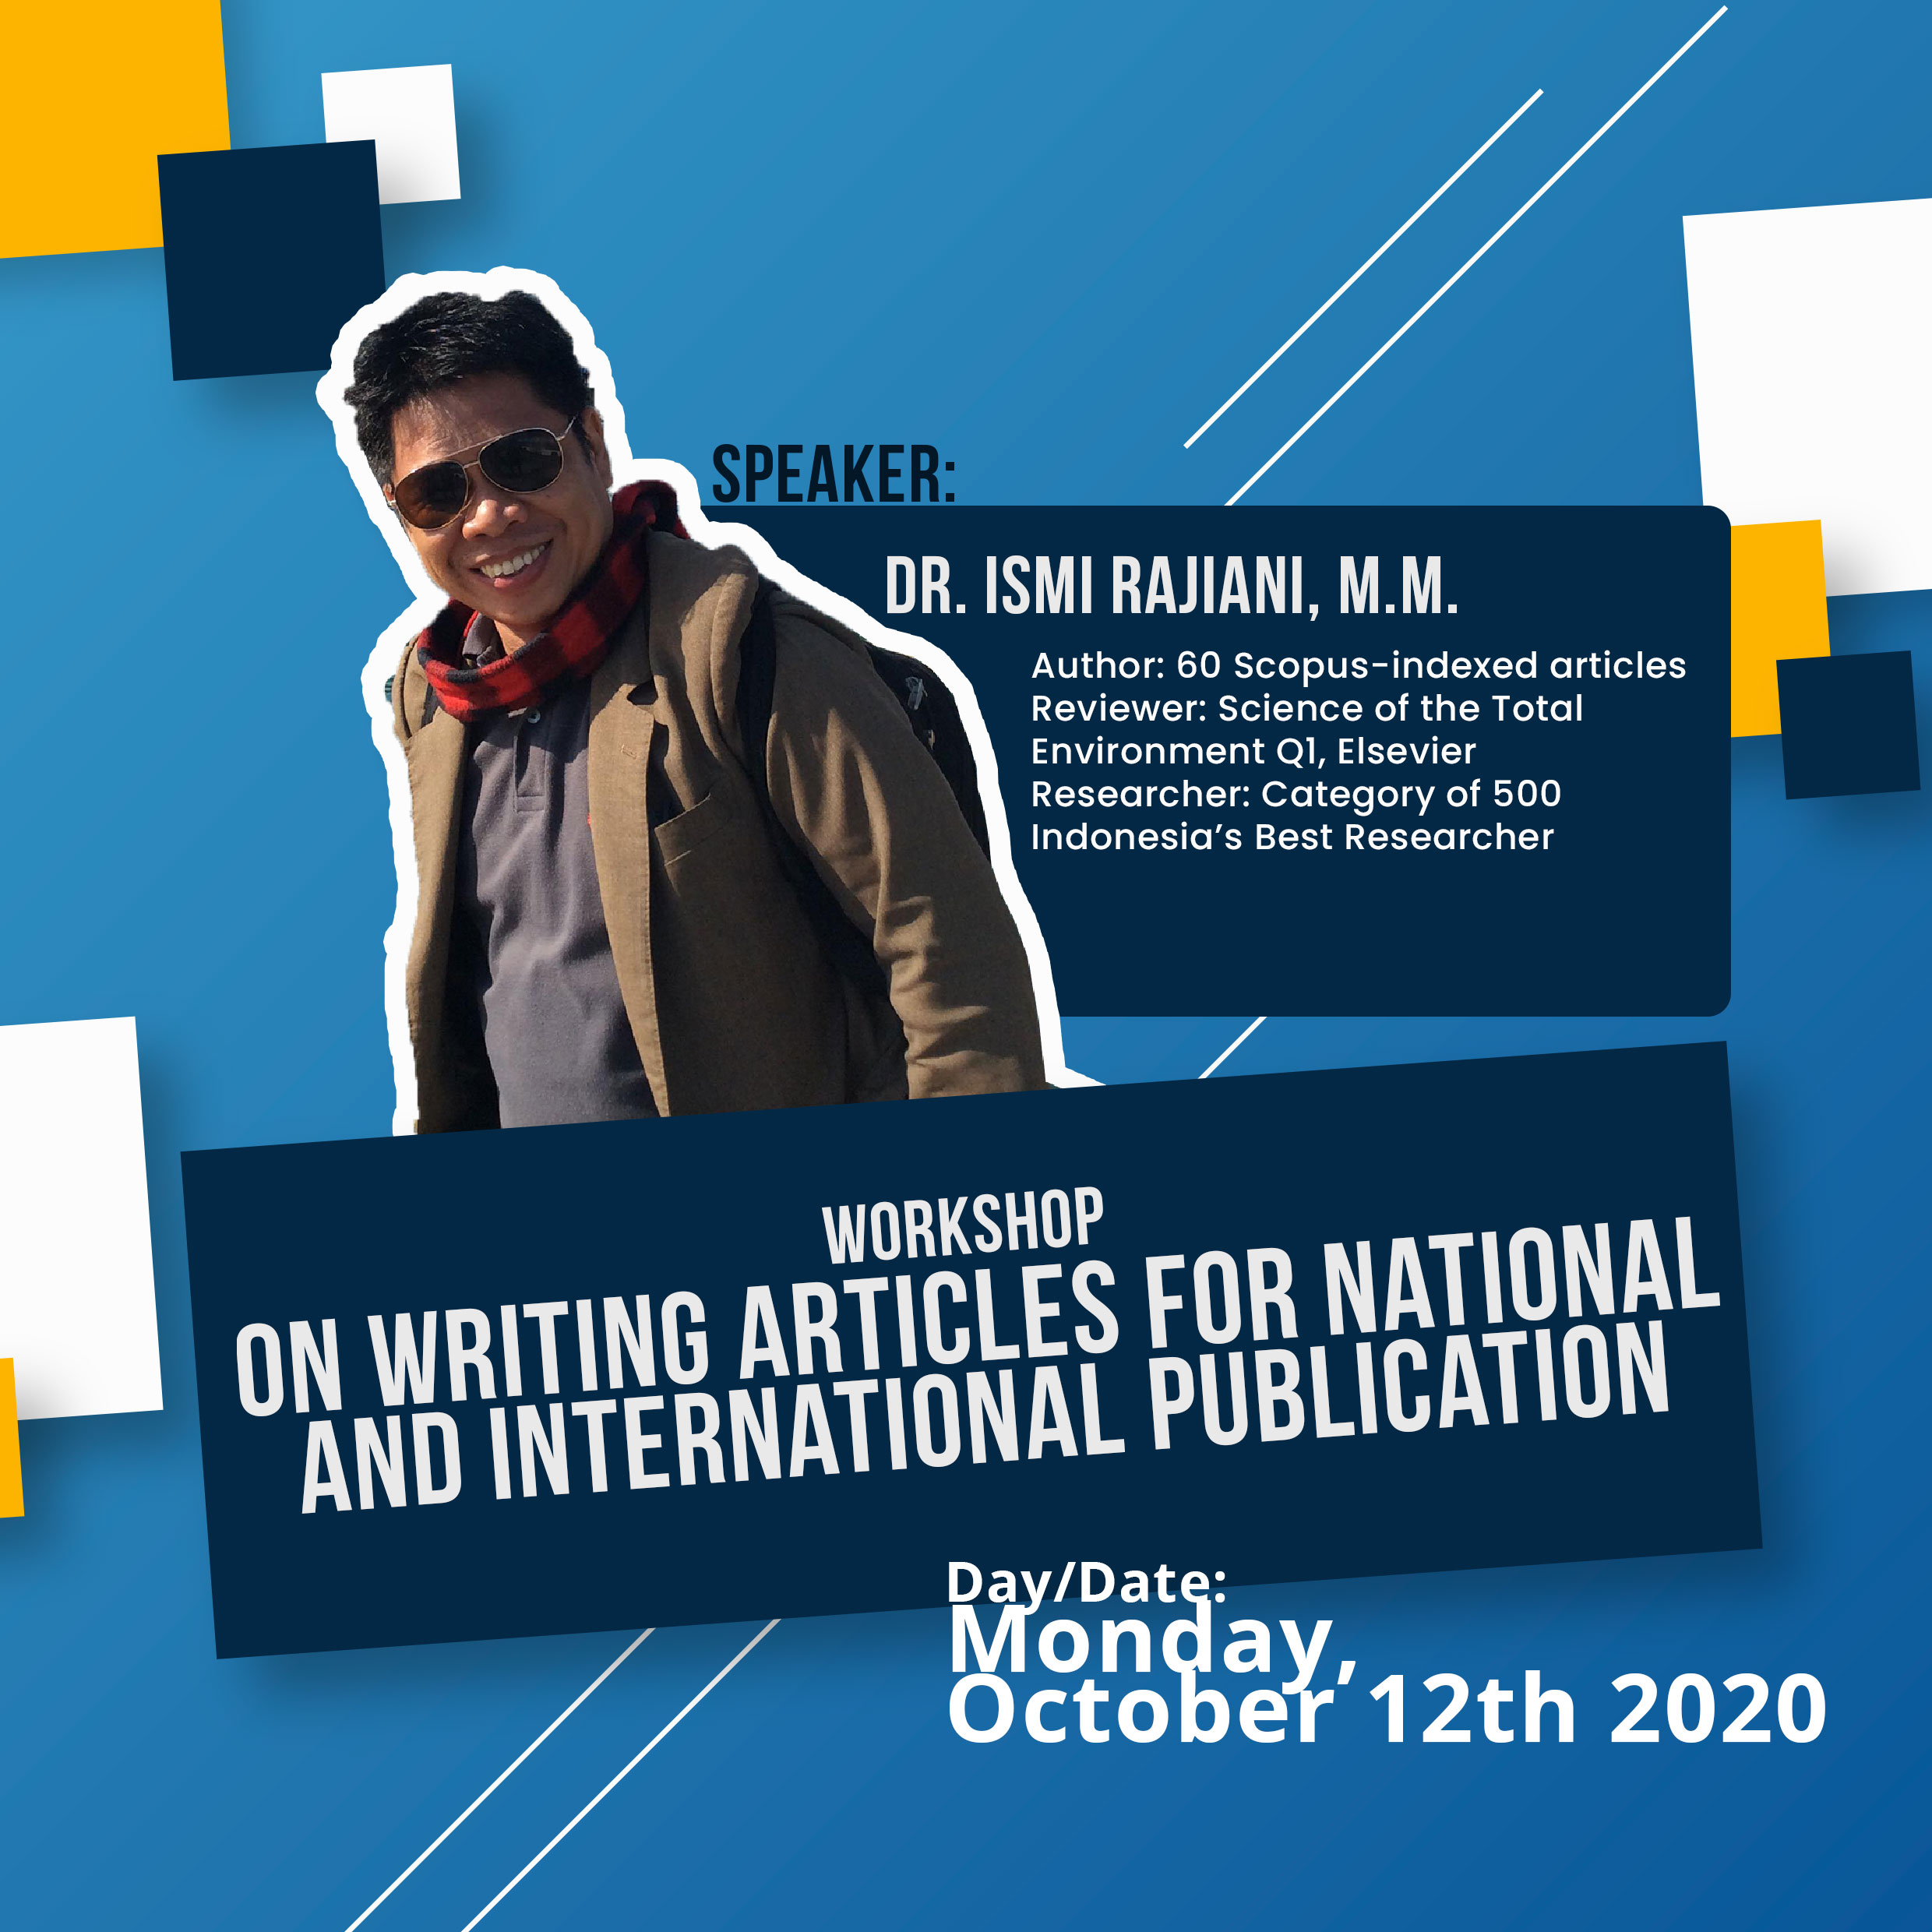 ON-WRITING-ARTICLES-FOR-NATIONAL-AND-INTERNATIONAL-PUBLICATION